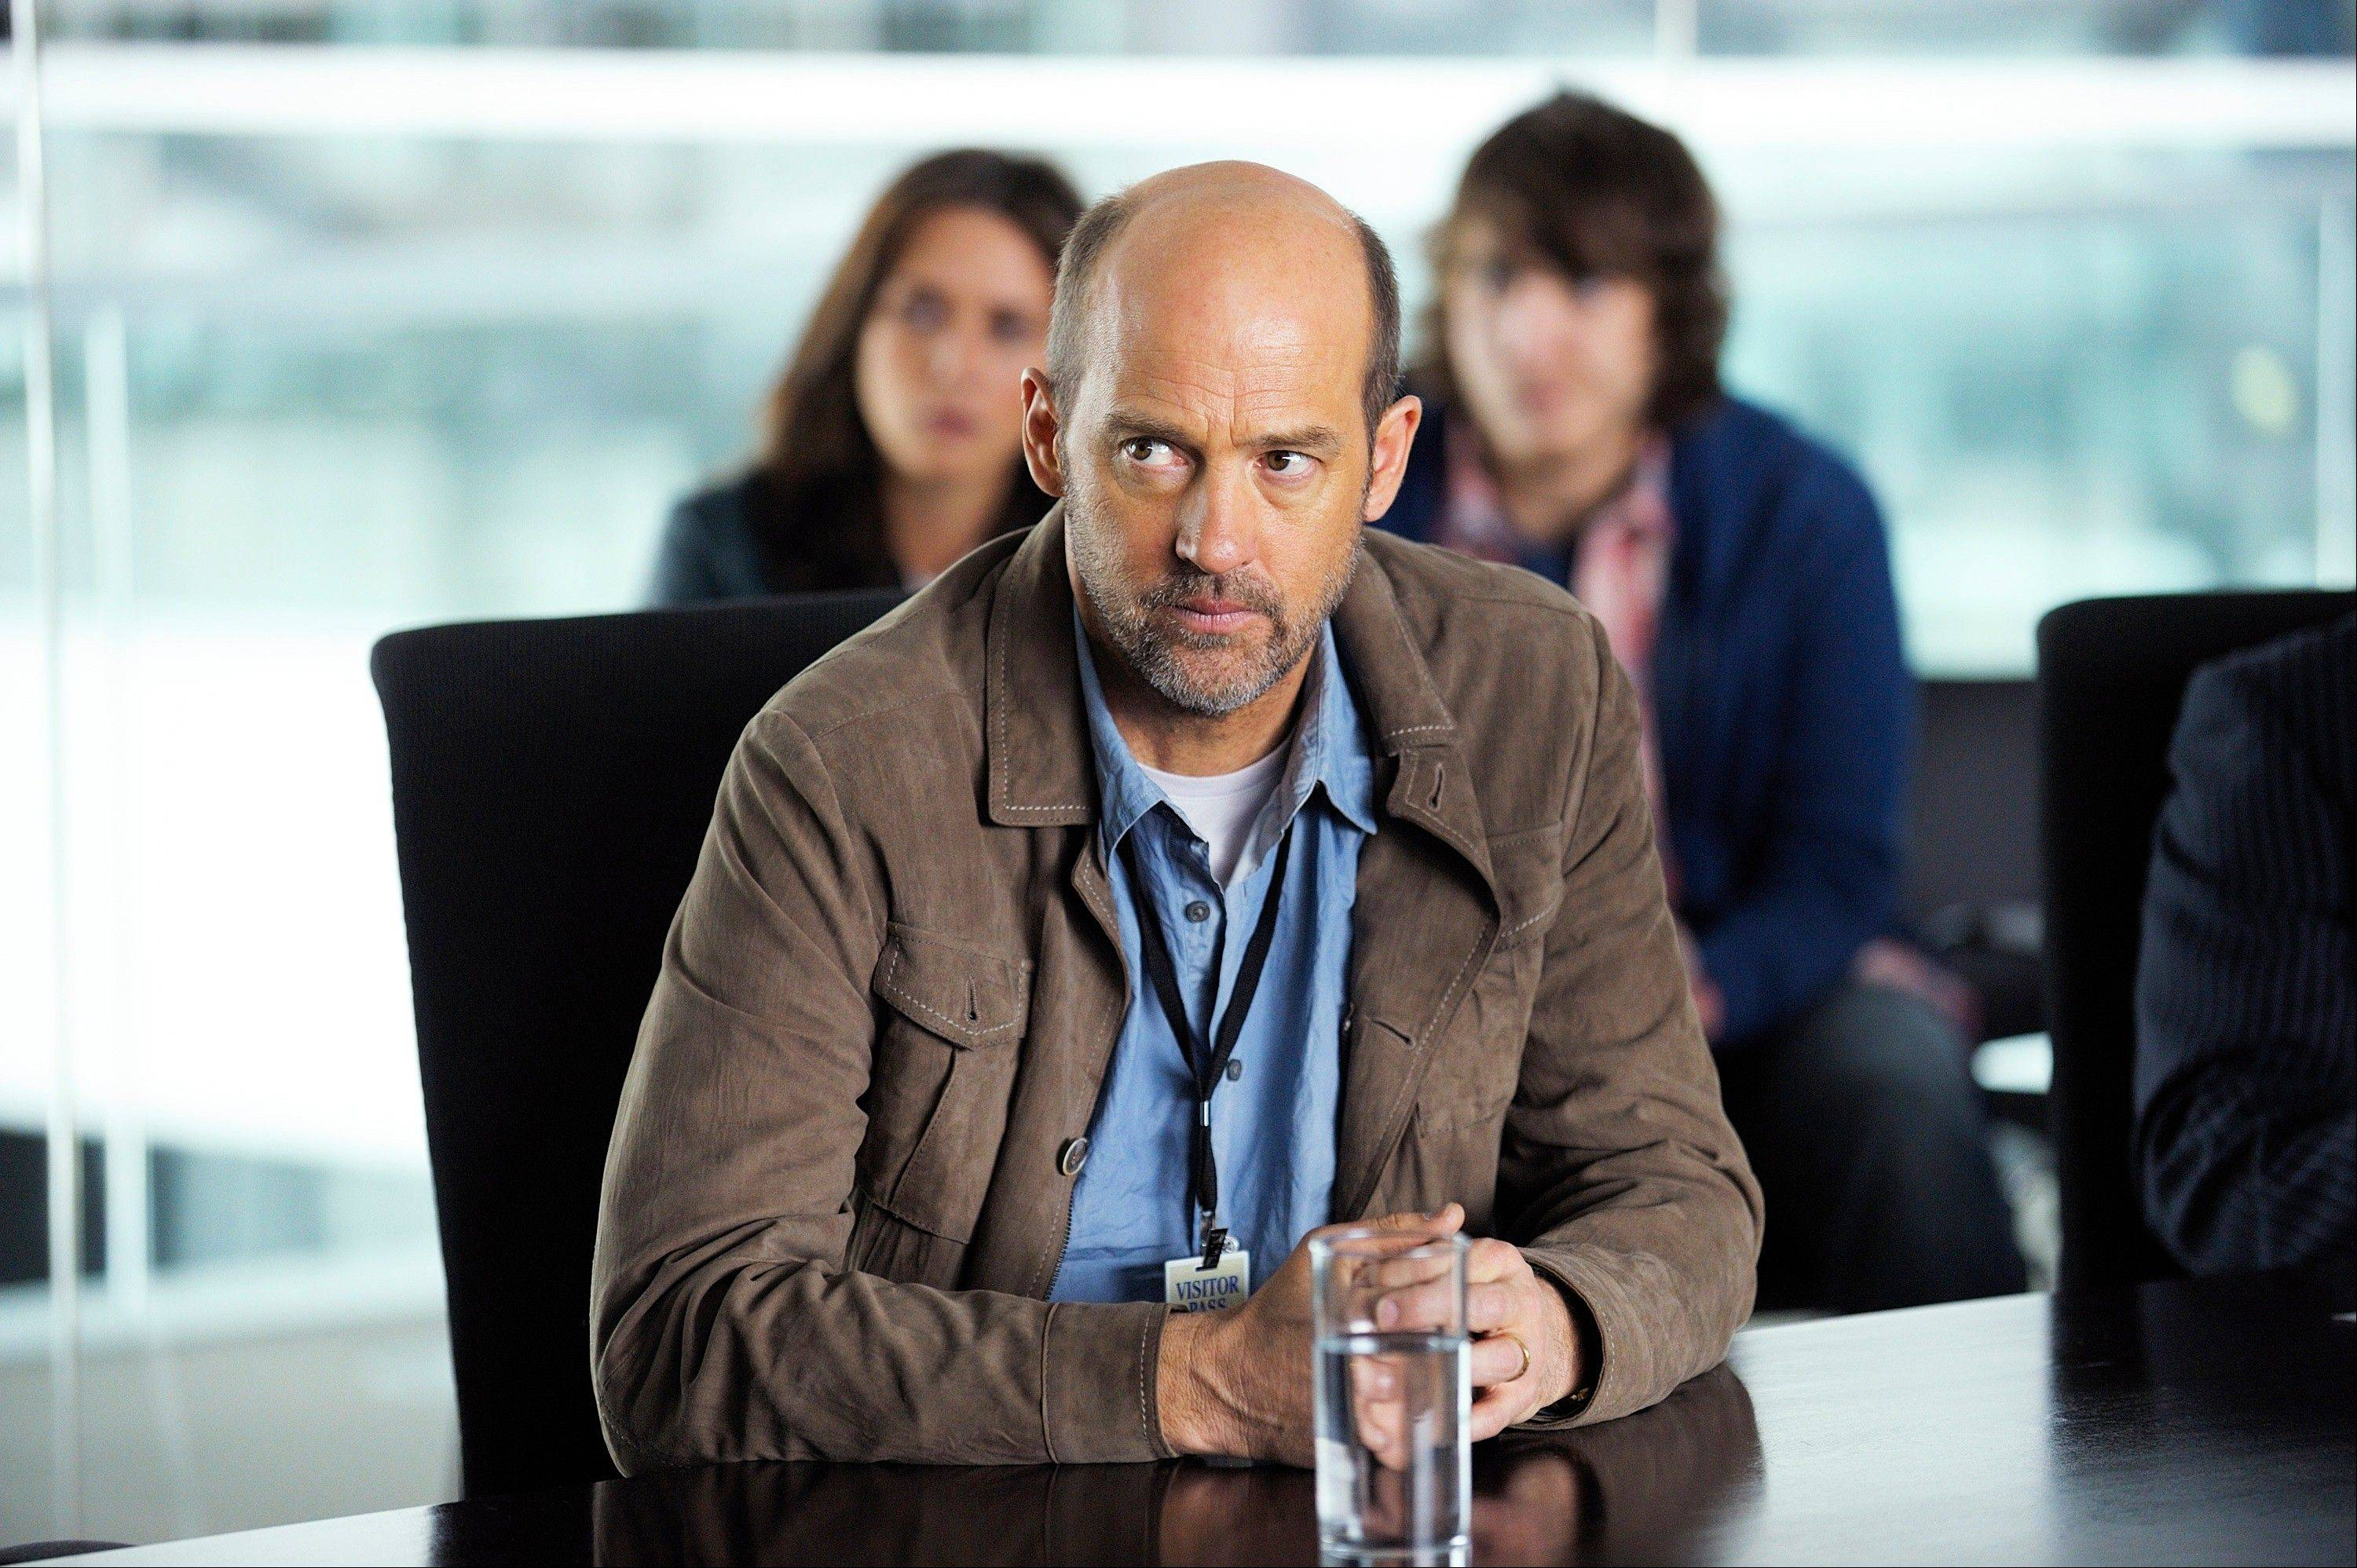 Anthony Edwards plays Hank Galliston, a magazine publisher who descends into an historical mystery after his wife is kidnapped, in �Zero Hour,� premiering Thursday on ABC.